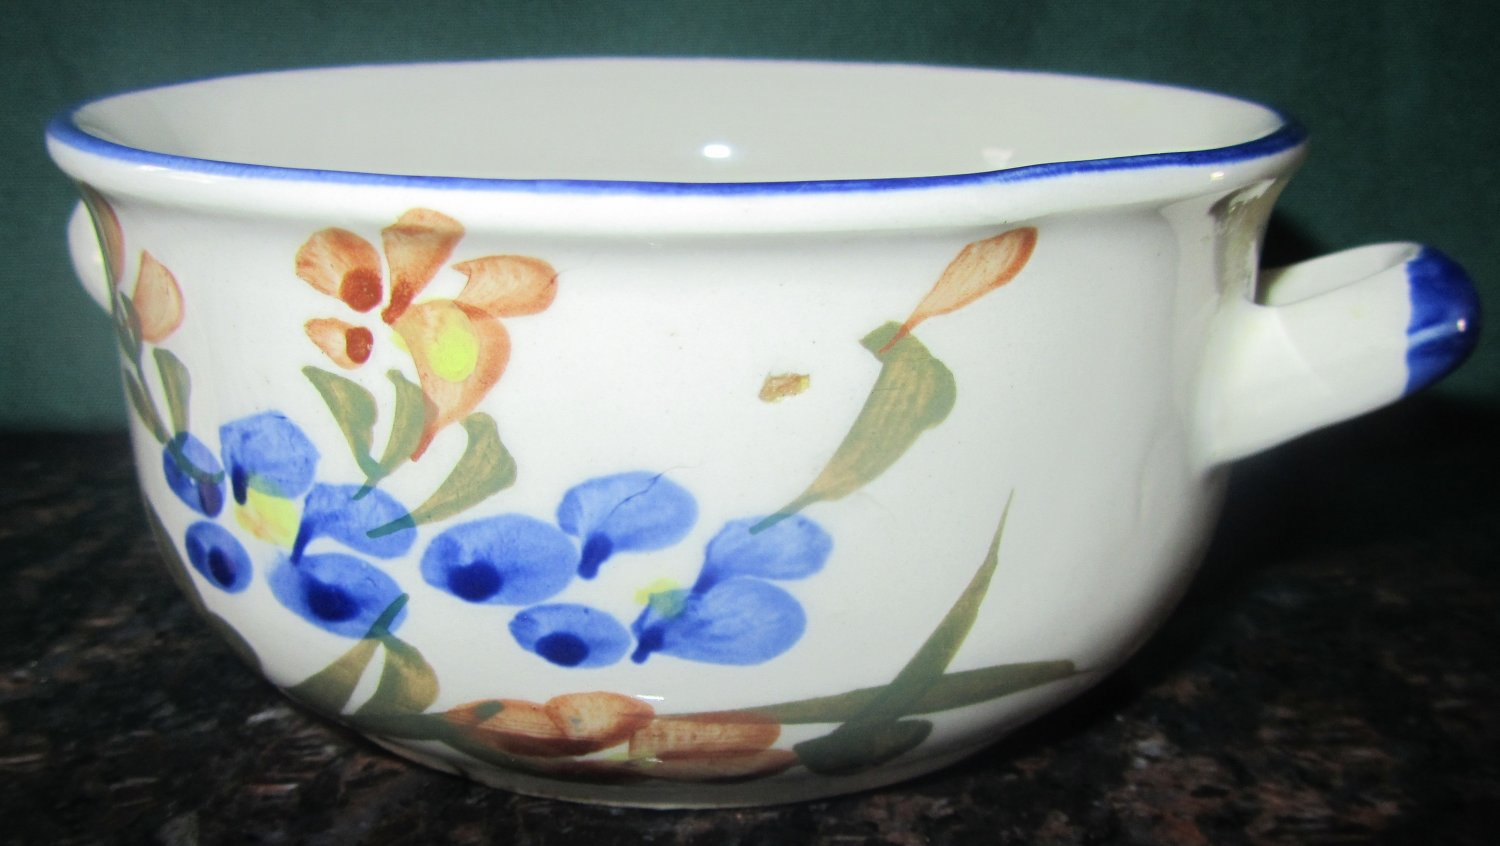 VINTAGE CHI JIANG CHINA - PORCELAIN CERAMIC WHITE BLUE SOUP/CEREAL BOWL